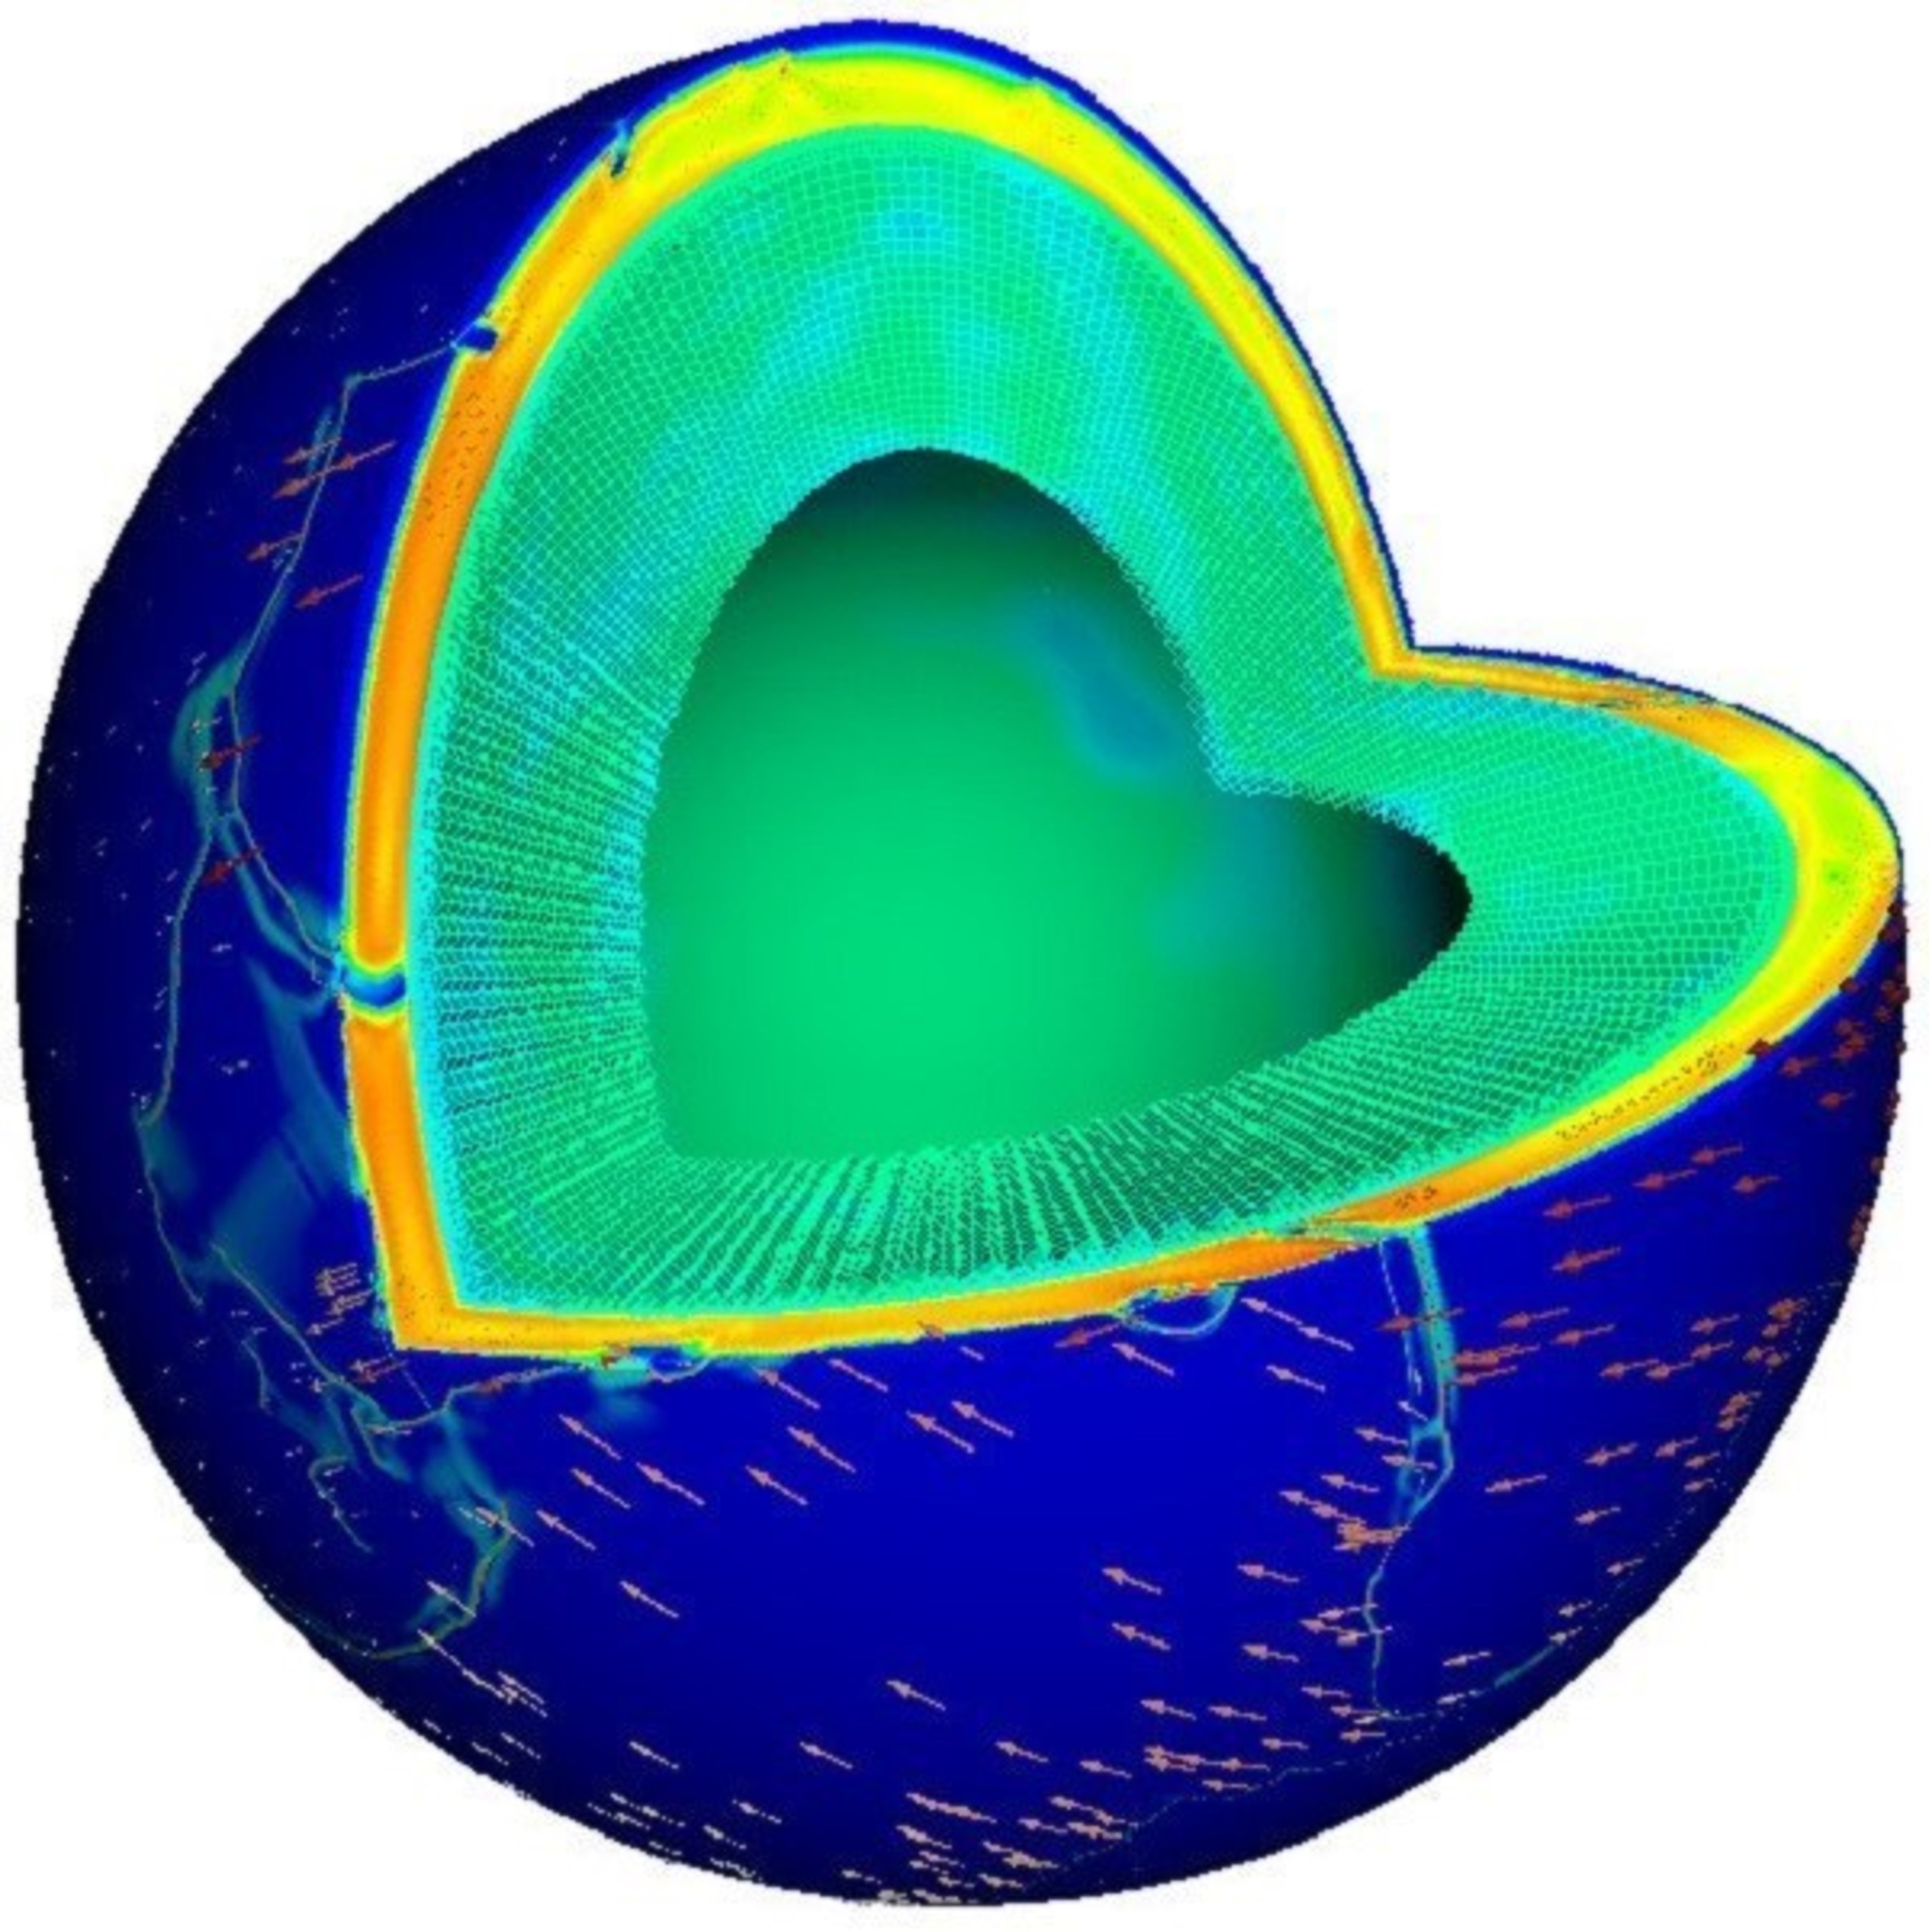 Gordon Bell Prize Awarded for Most Realistic Simulation of the Dynamics of Earth's Interior to Date; Opens Path to Better Understanding of Earthquakes and Volcanoes